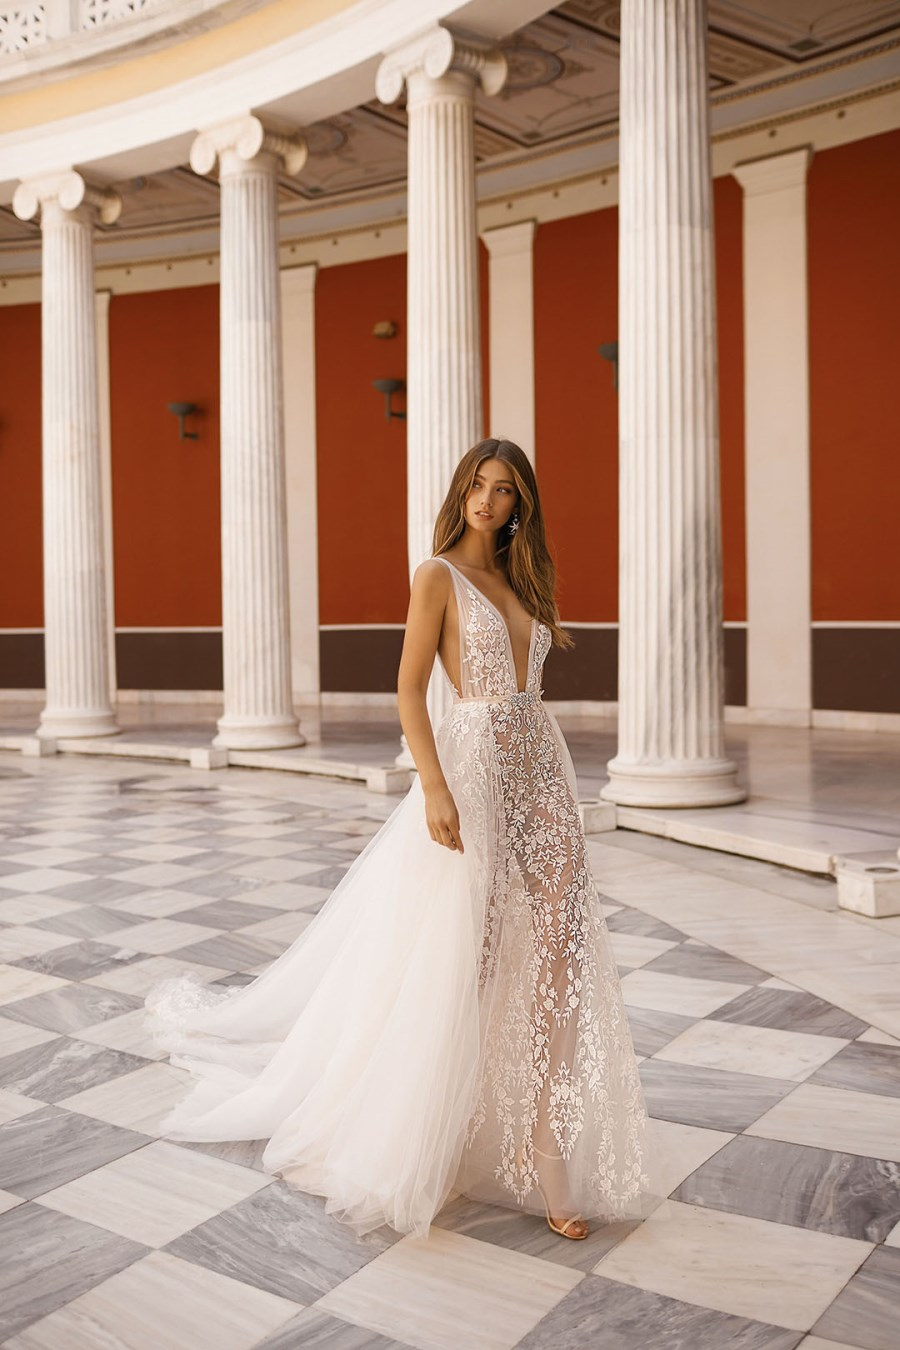 berta-wedding-dress-2019-1 (9)_2